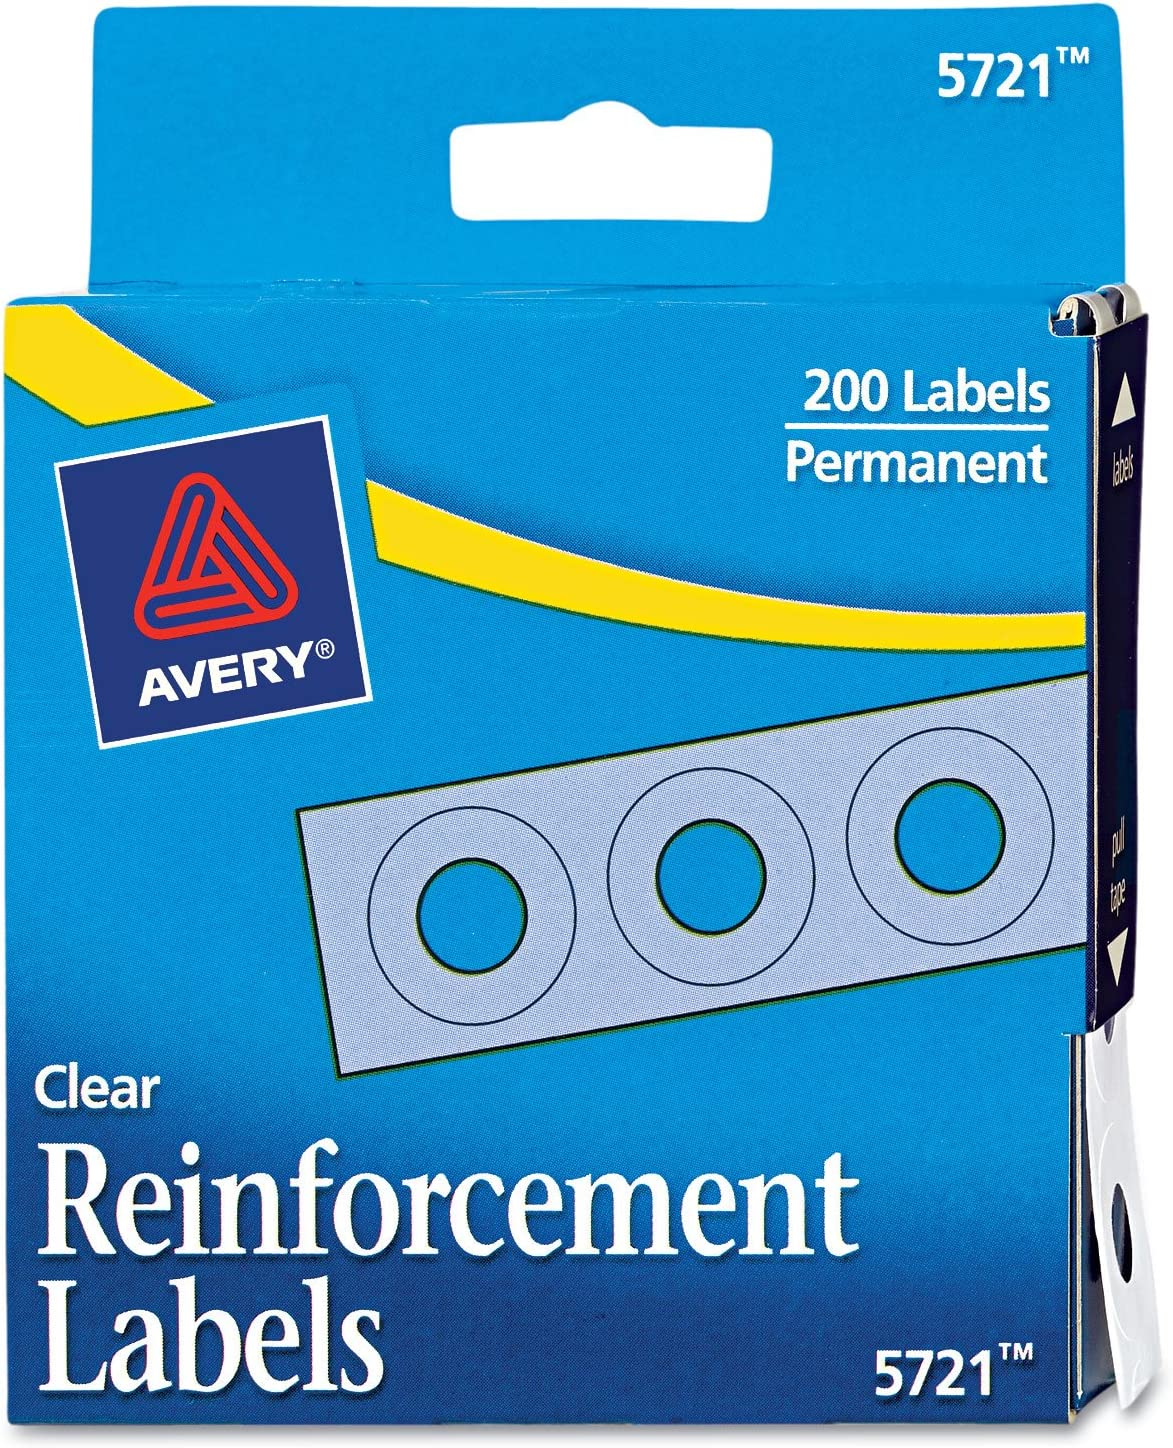 """Avery 1/4"""" Round Self-Adhesive Reinforcement Labels, Clear, Pack of 200 (5721)"""